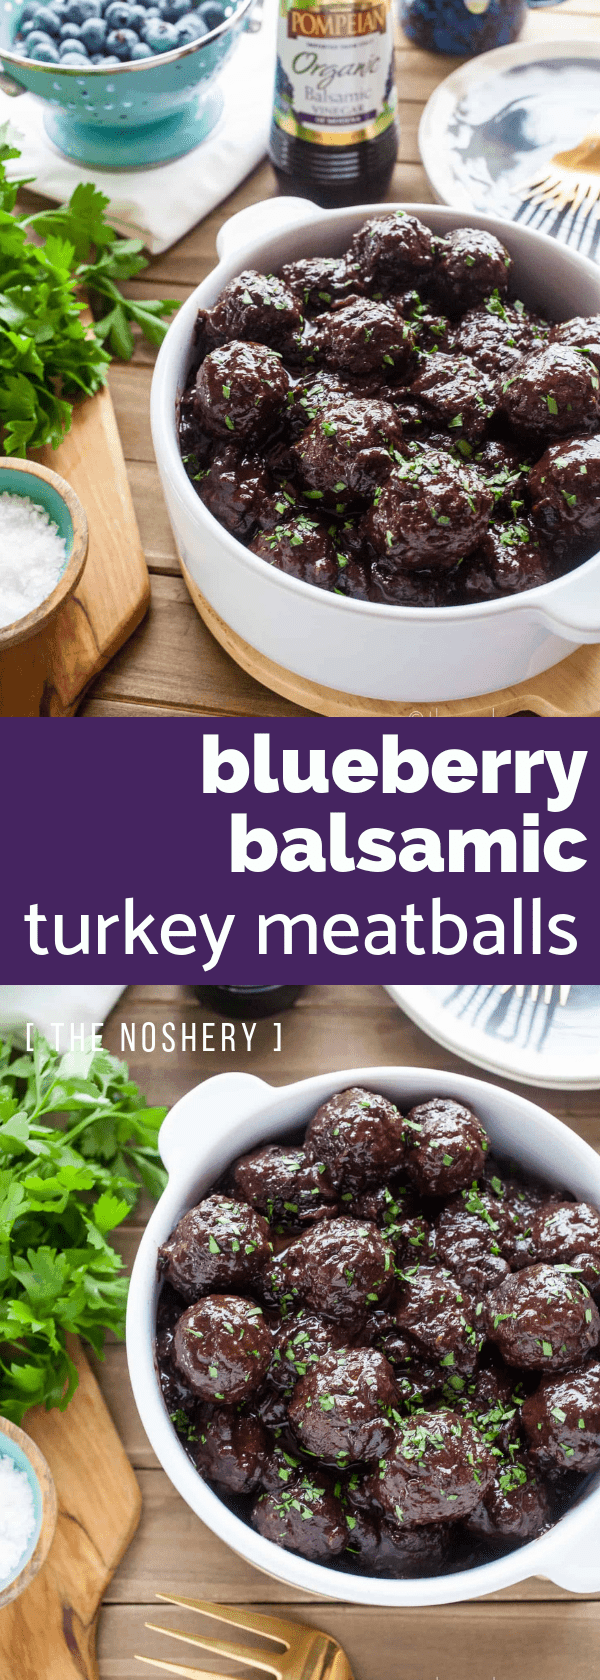 Blueberry Balsamic Turkey Meatballs | These meatballs are made with seasoned lean ground turkey and tossed in a simple sauce made of blueberries and balsamic vinegar. | The Noshery